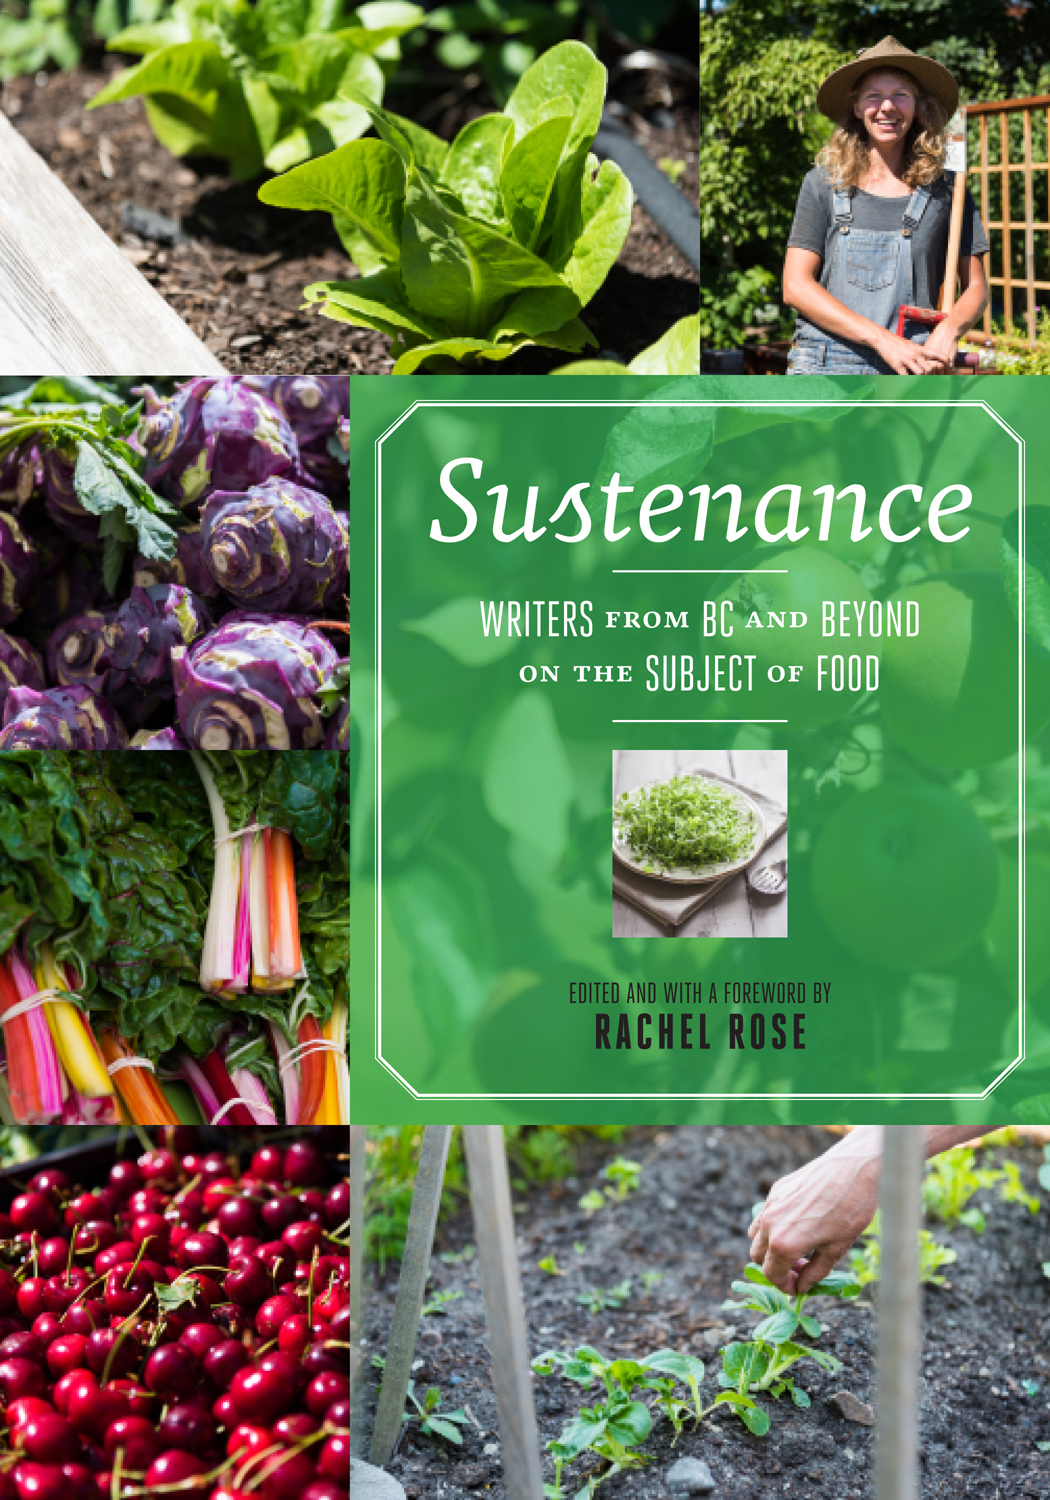 Sustenance: Writers from BC and Beyond on the Subject of Food